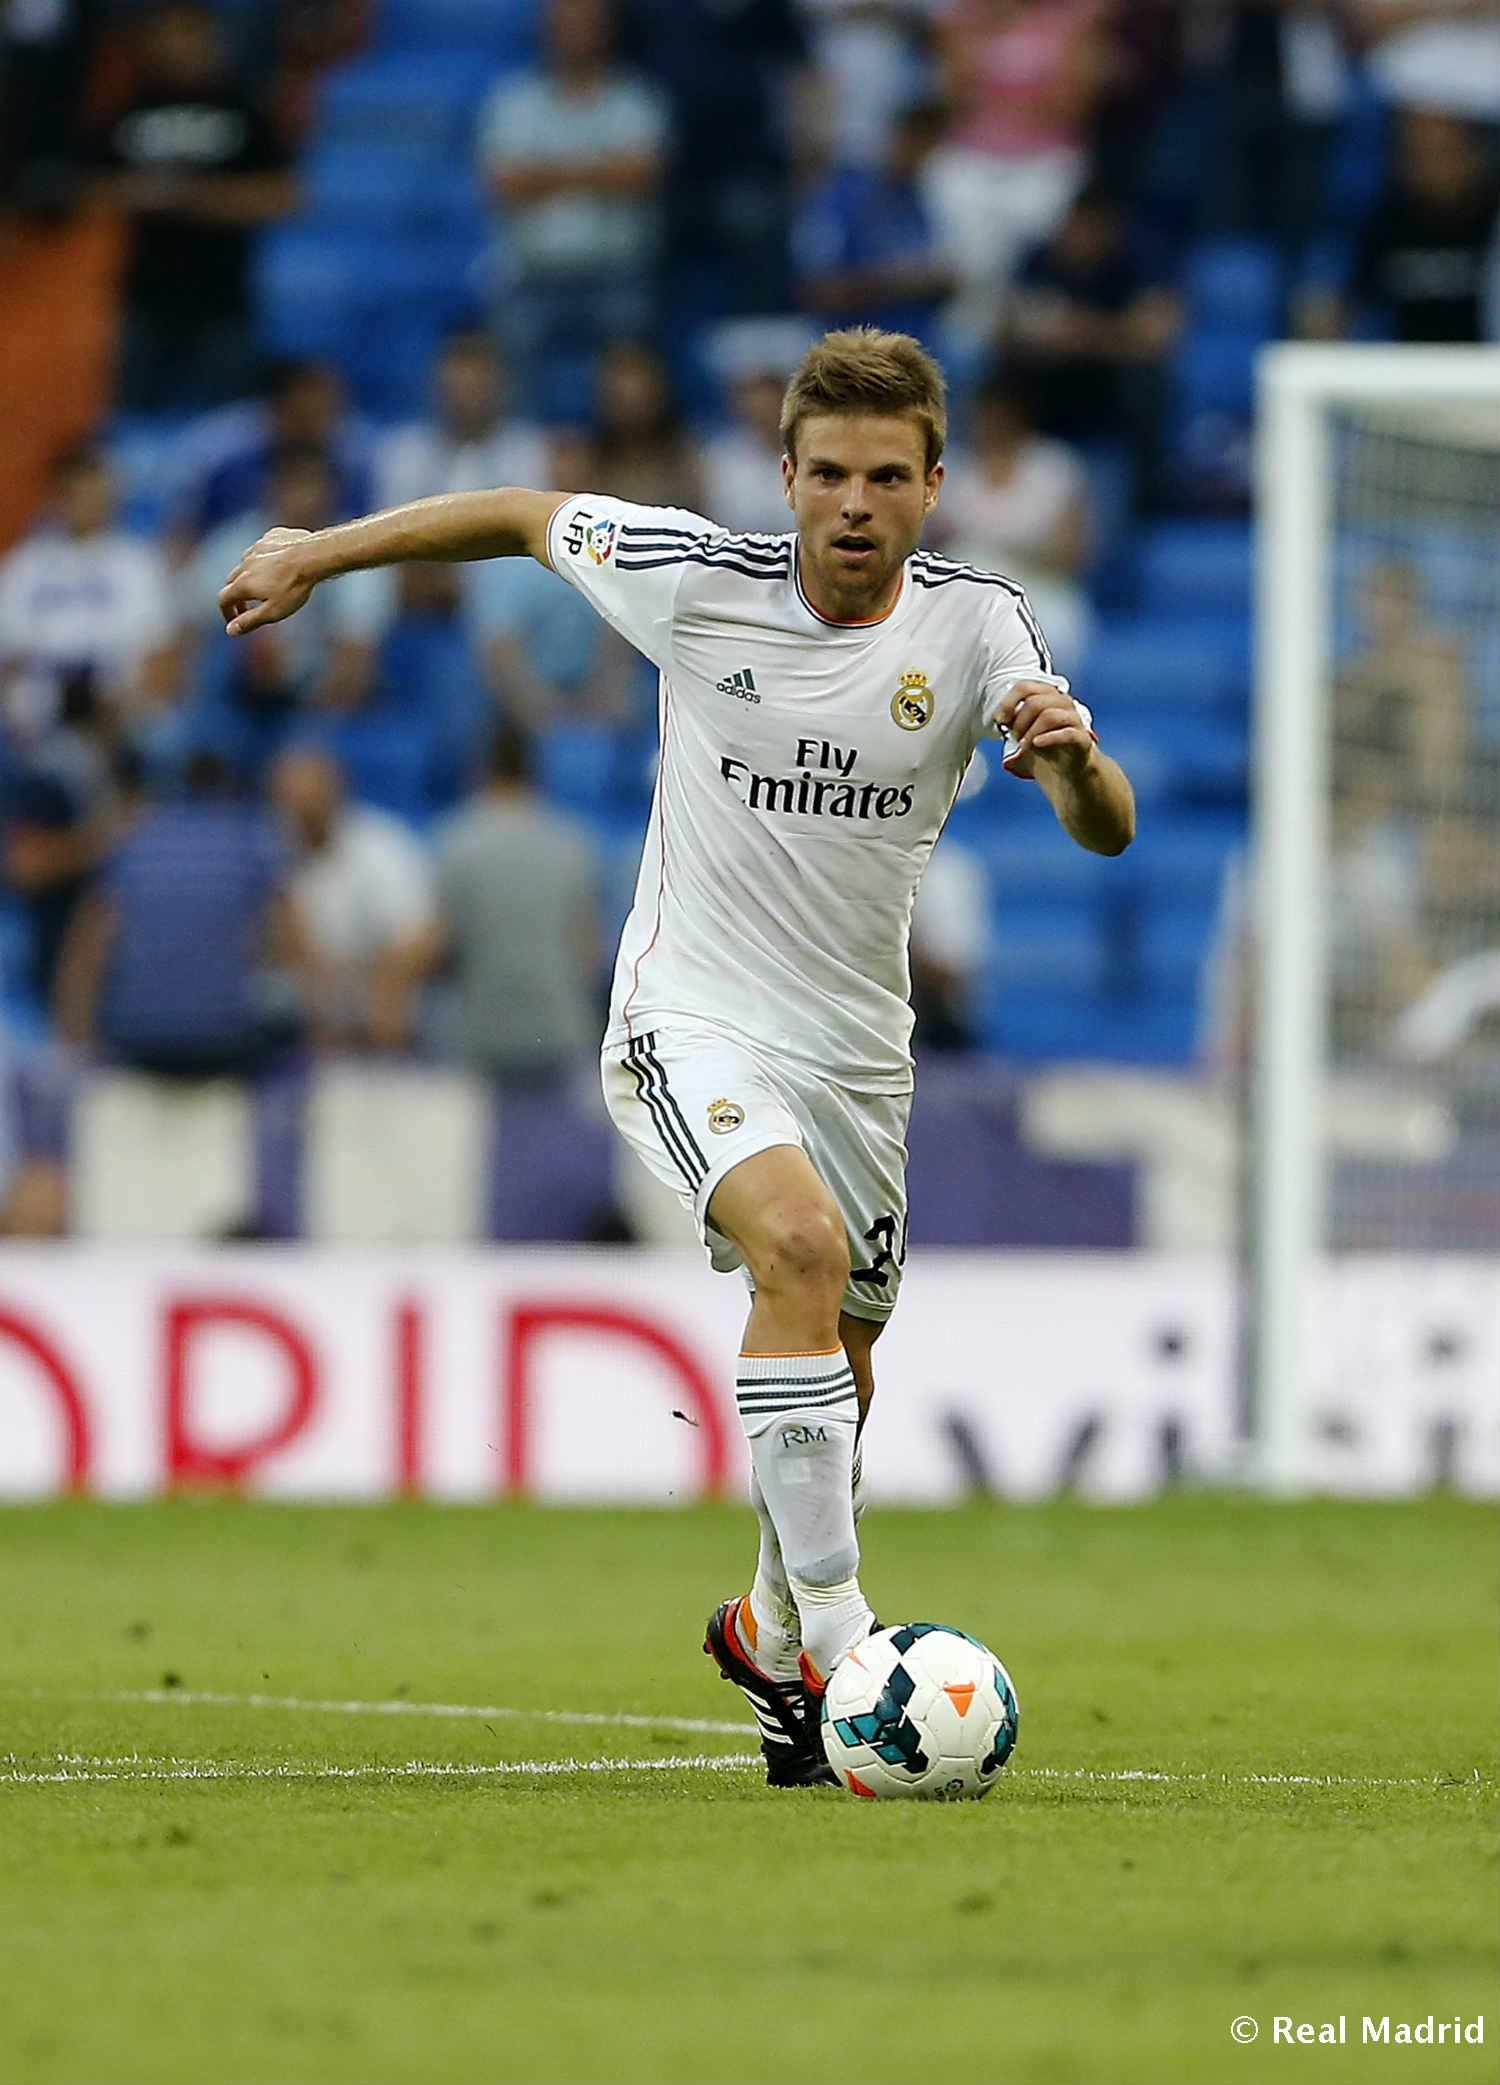 Real Madrid - Illarramendi - 27-01-2014